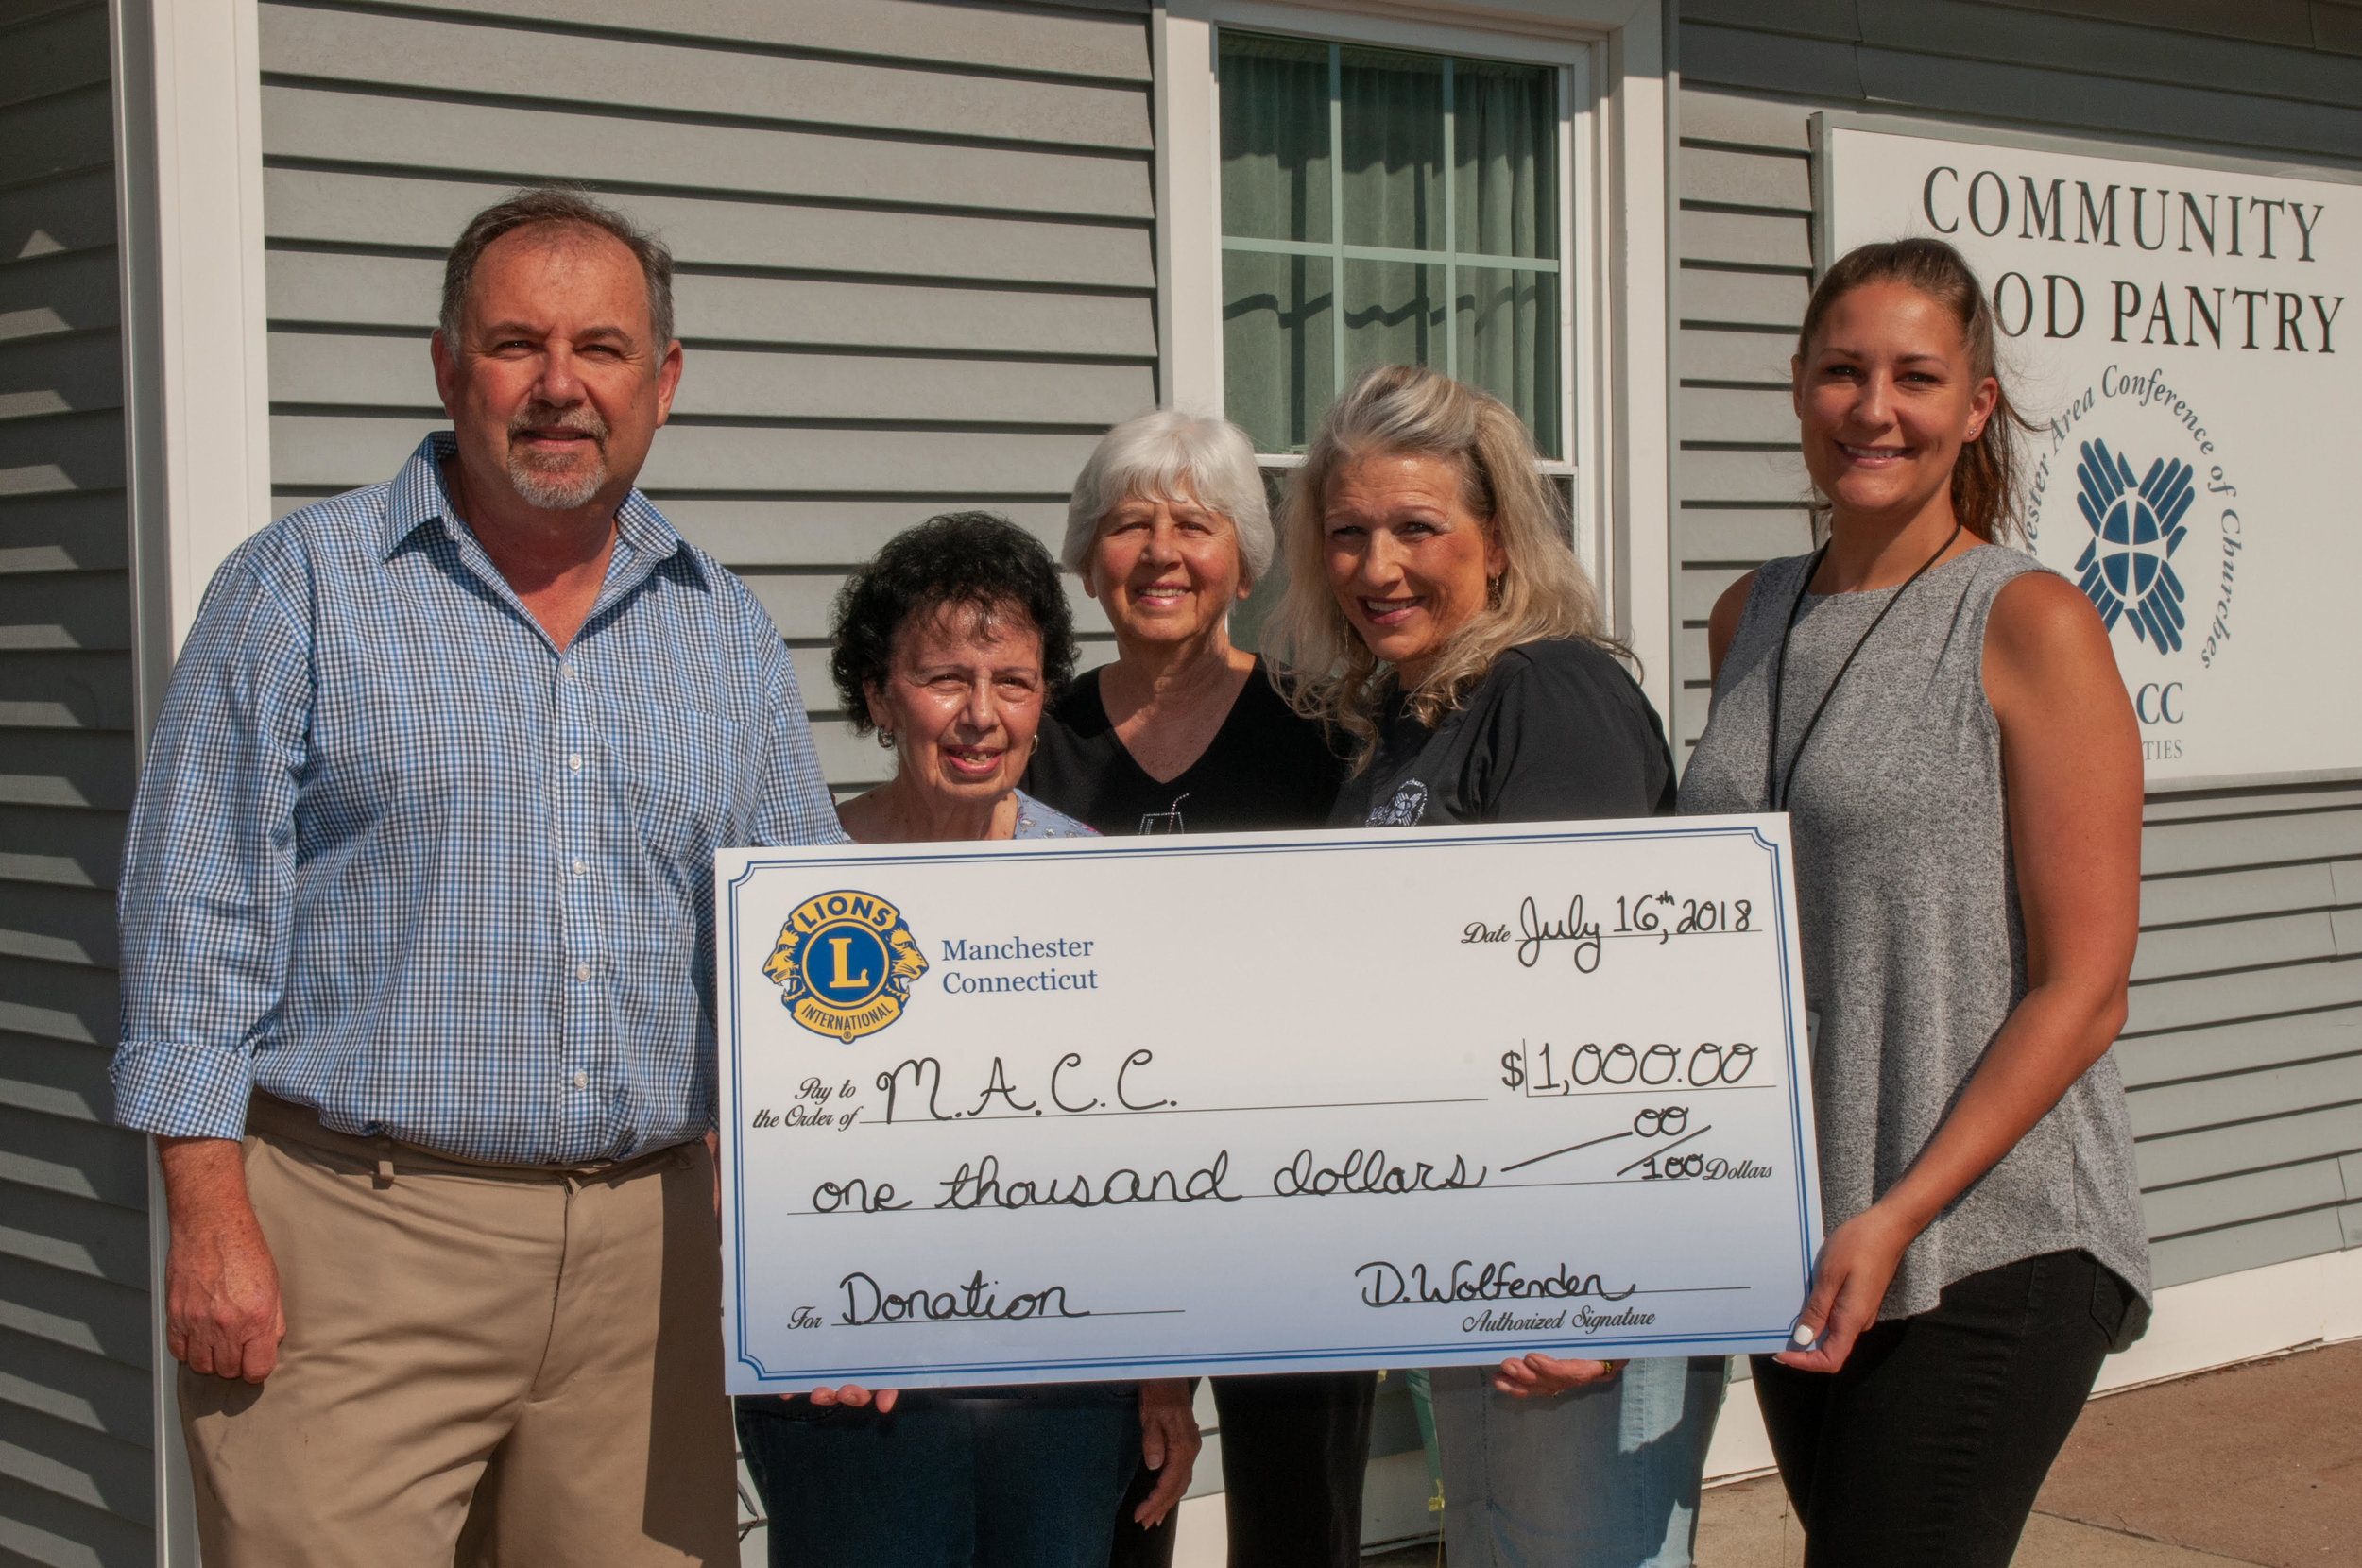 MACC check presentation photo 2018-8.jpg